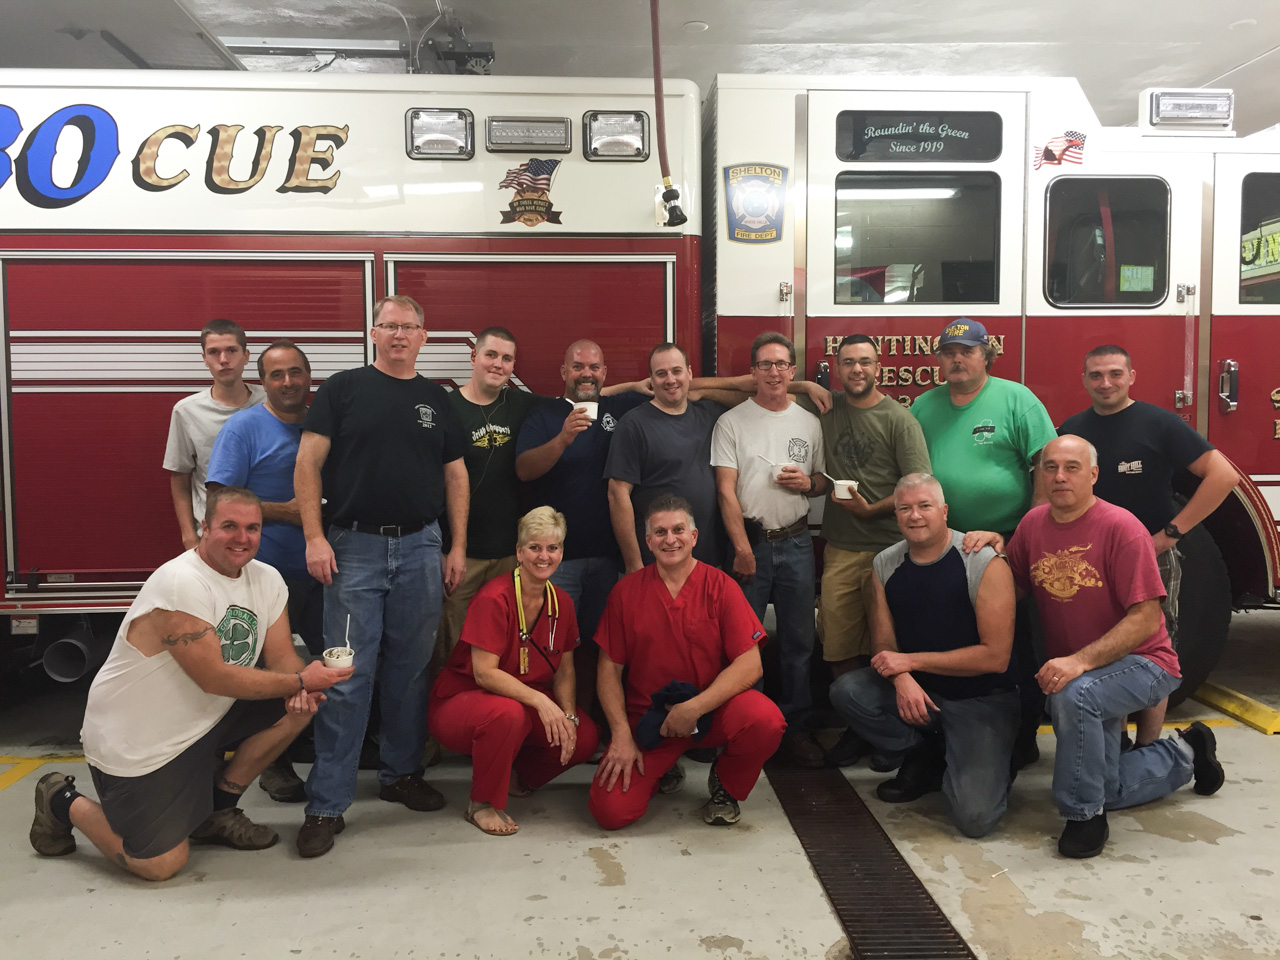 Fire Department Event with Ice Cream Emergency